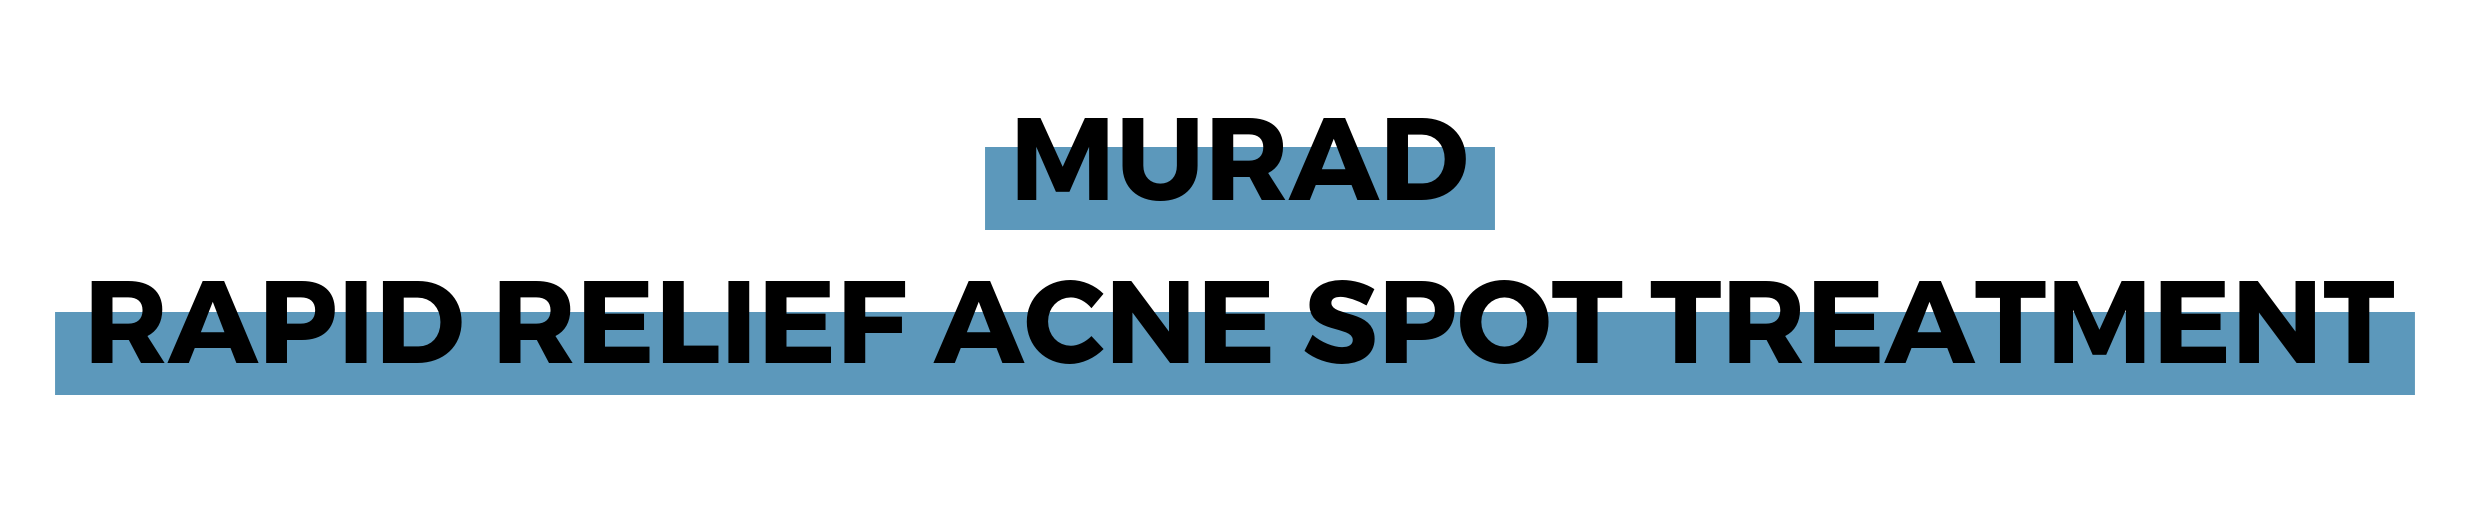 MURAD RAPID RELIEF ACNE SPOT TREATMENT.png